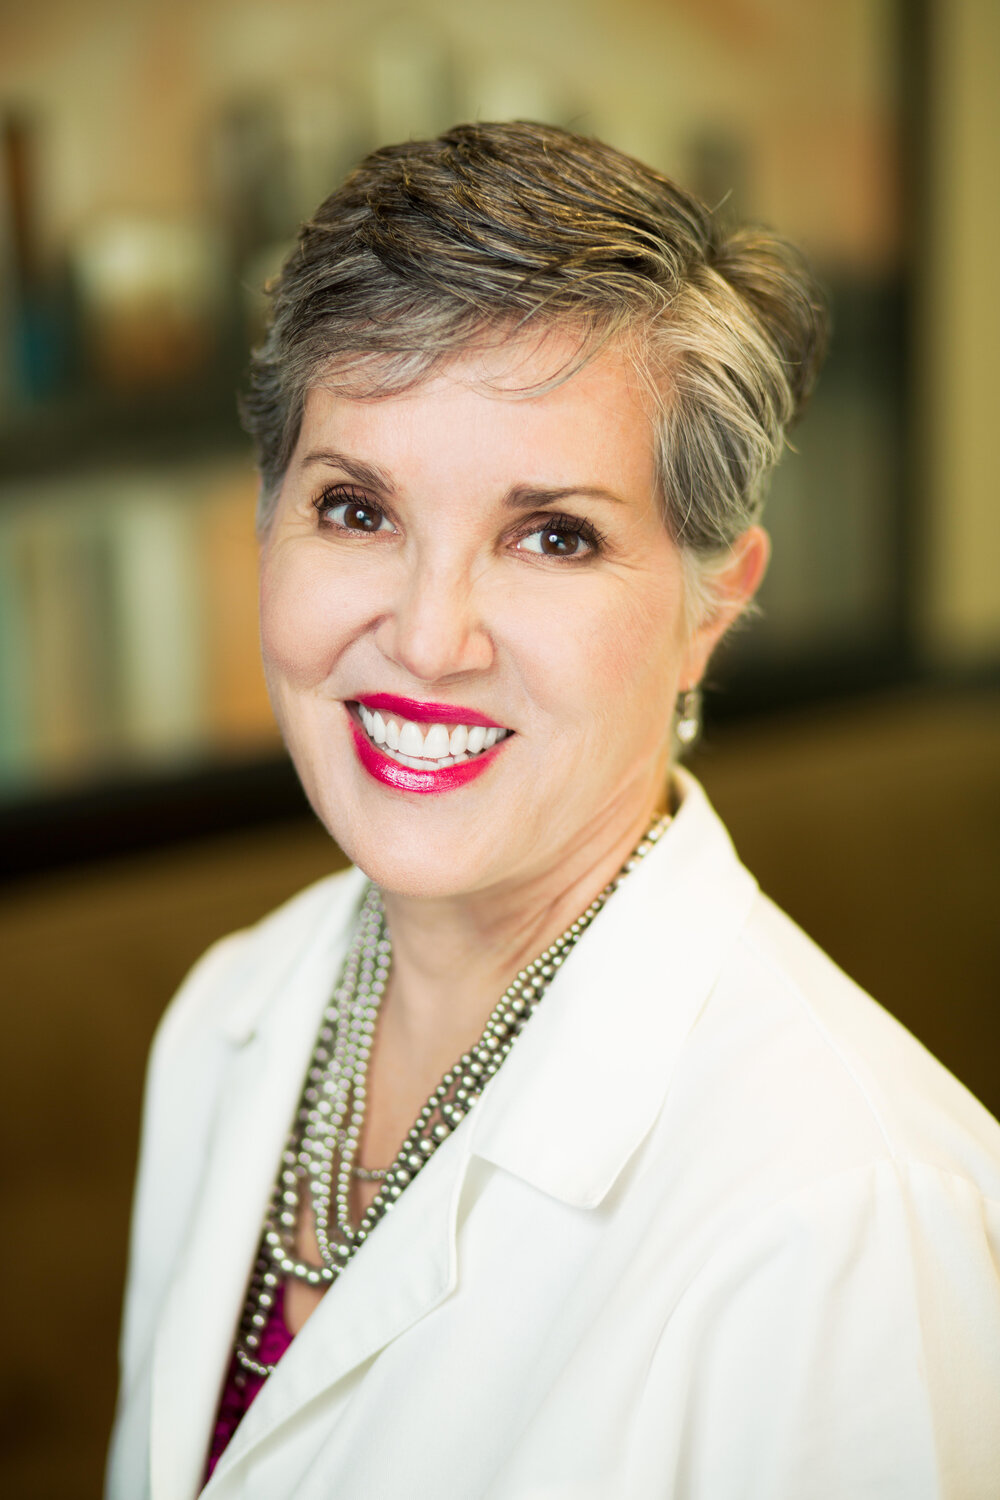 A Warm Welcome to You! - I'm so excited to welcome you to my super fun (& full!) life. As a retired dermatologist, I'm passionate about skincare among many other things - especially my family. You'll find an array of topics, from beauty to travel, fashion to table settings, menus and entertainment ideas.